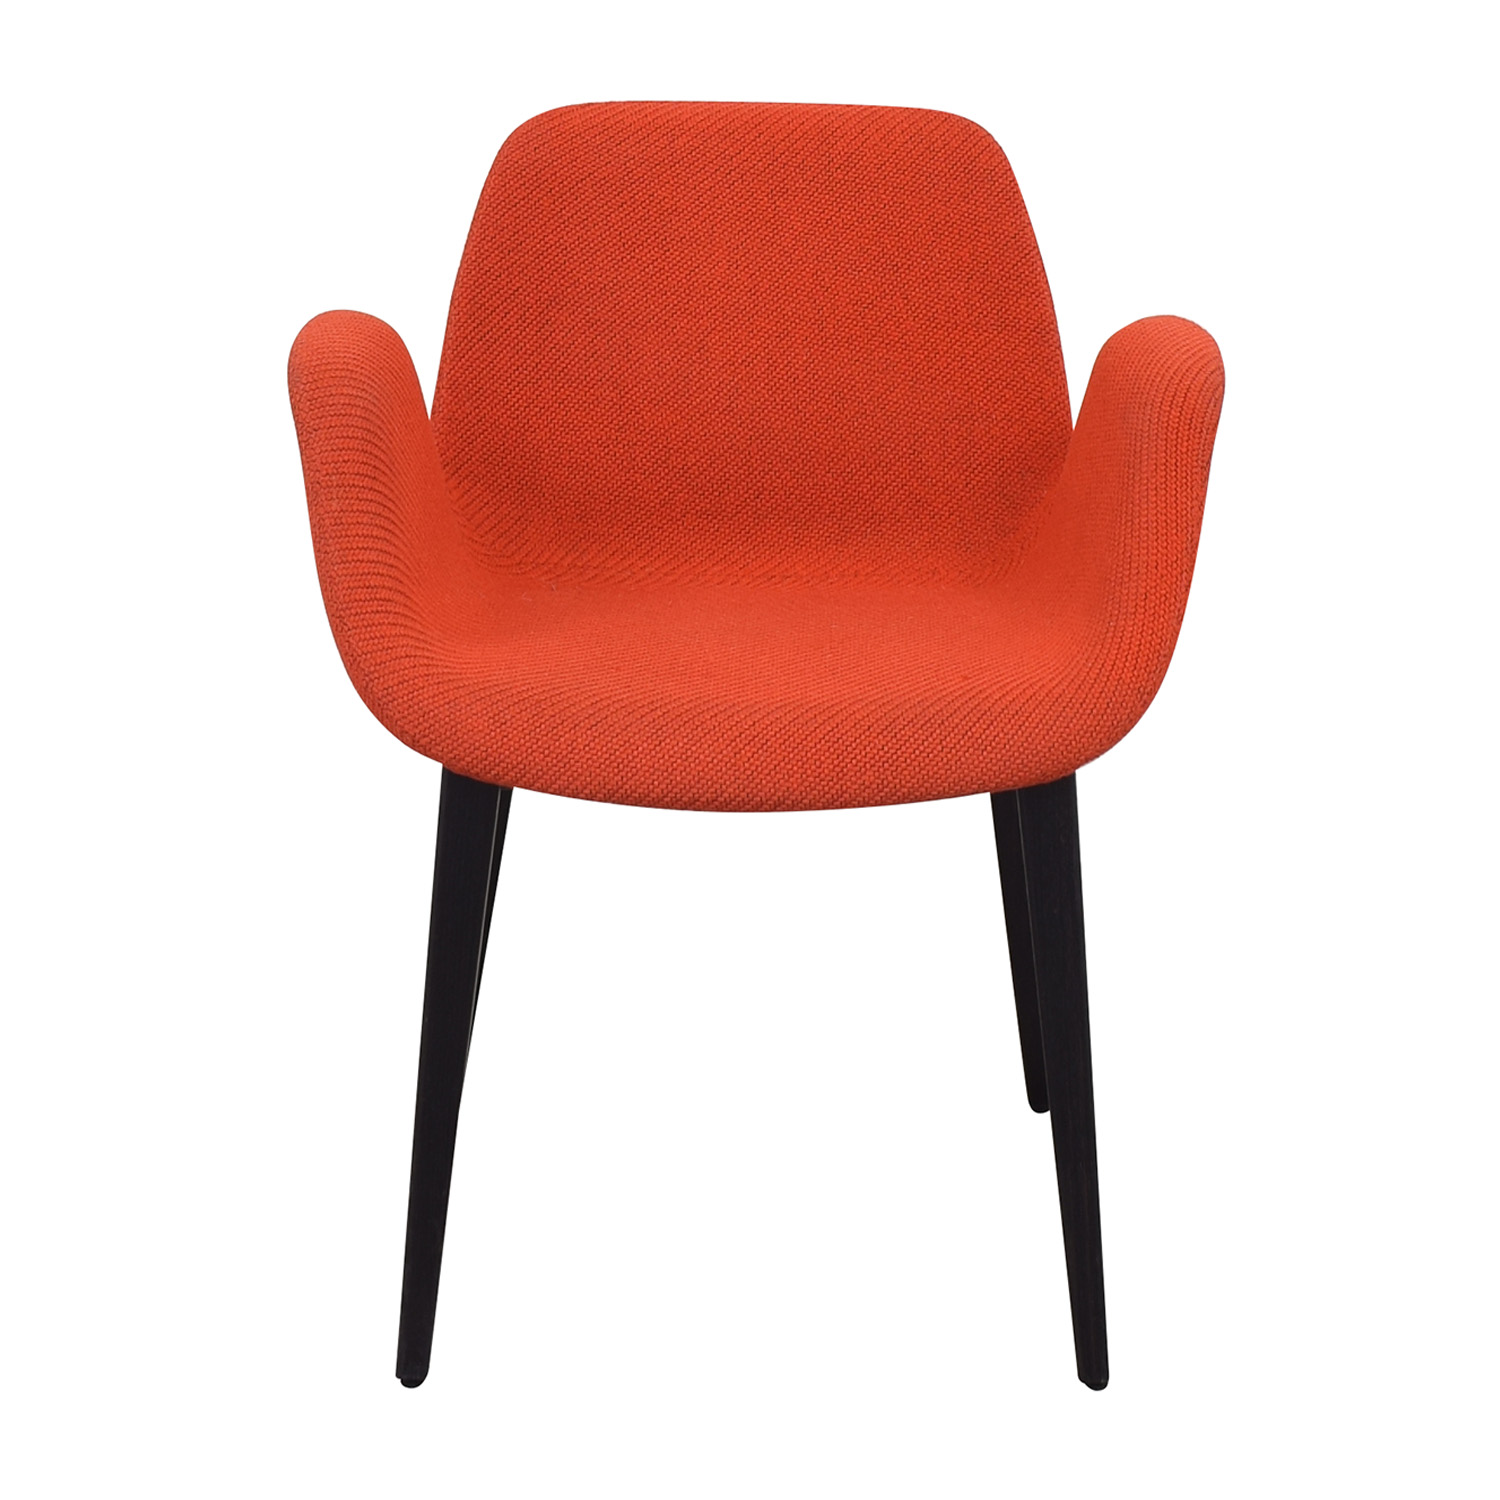 Koleksiyon Koleksiyon Halia Arm Chair Chairs